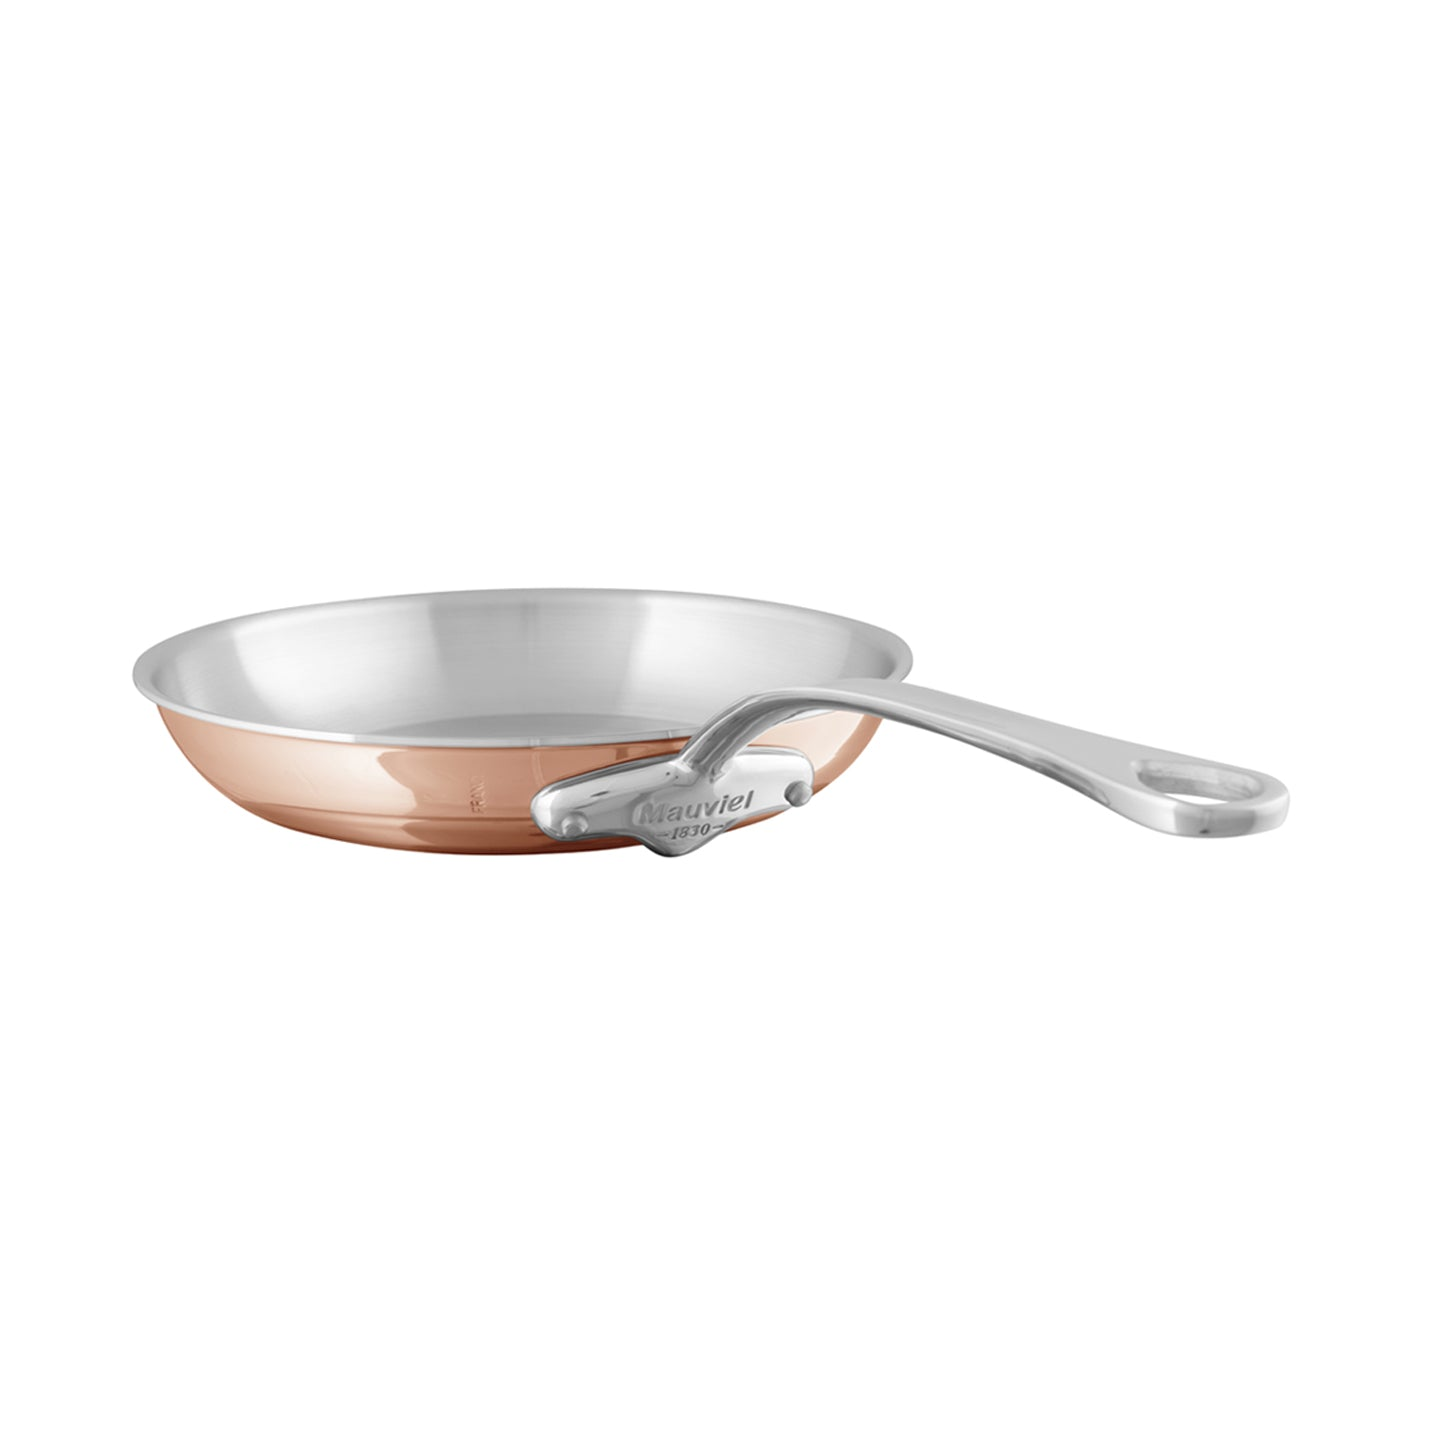 Mauviel M'6S Induction Compatible Copper Frying Pan